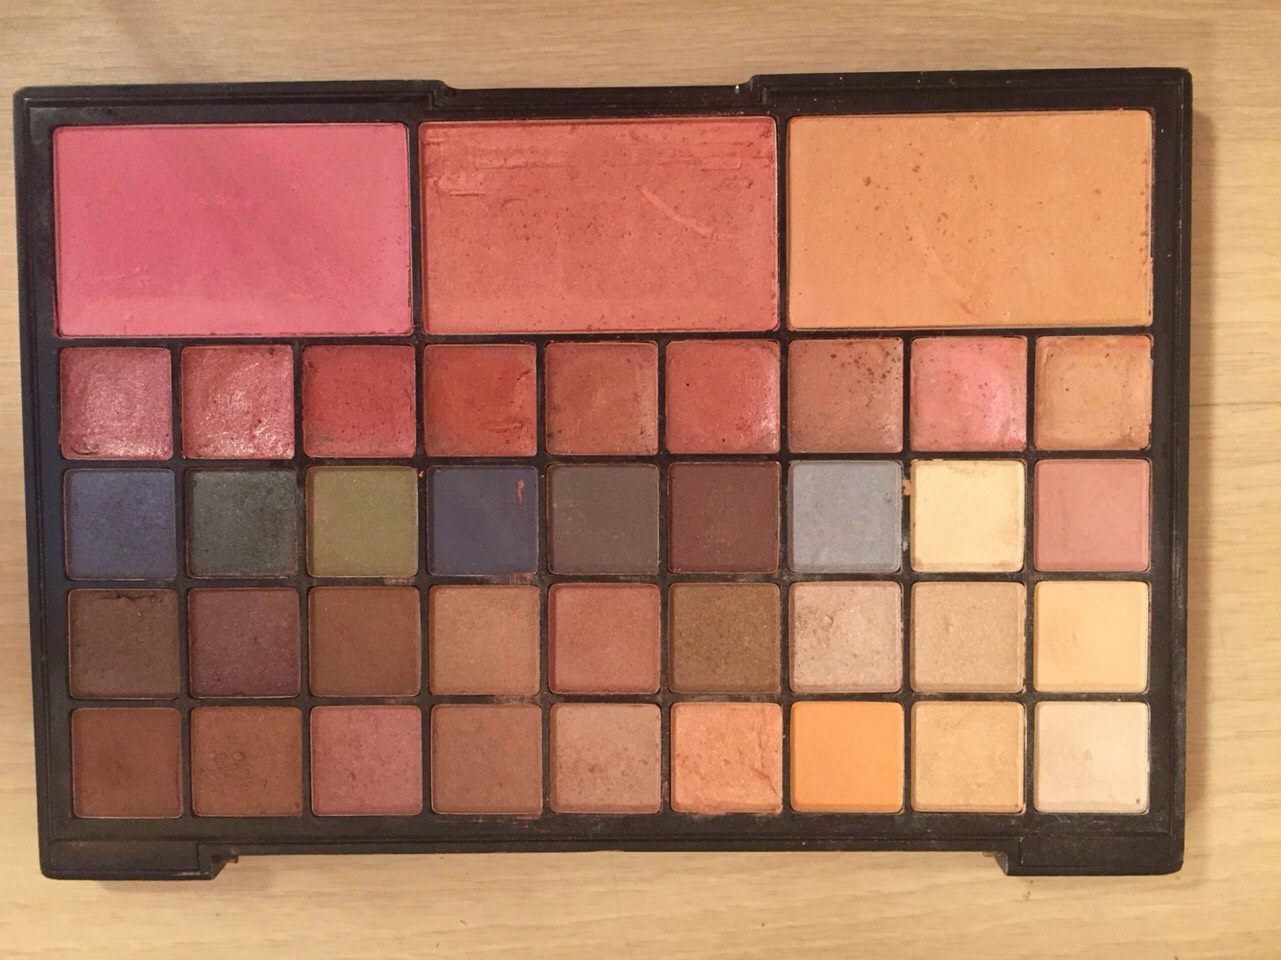 Get a palate of eyeshadows with Browns, blues, greens, purples, etc that you associate with bruises.